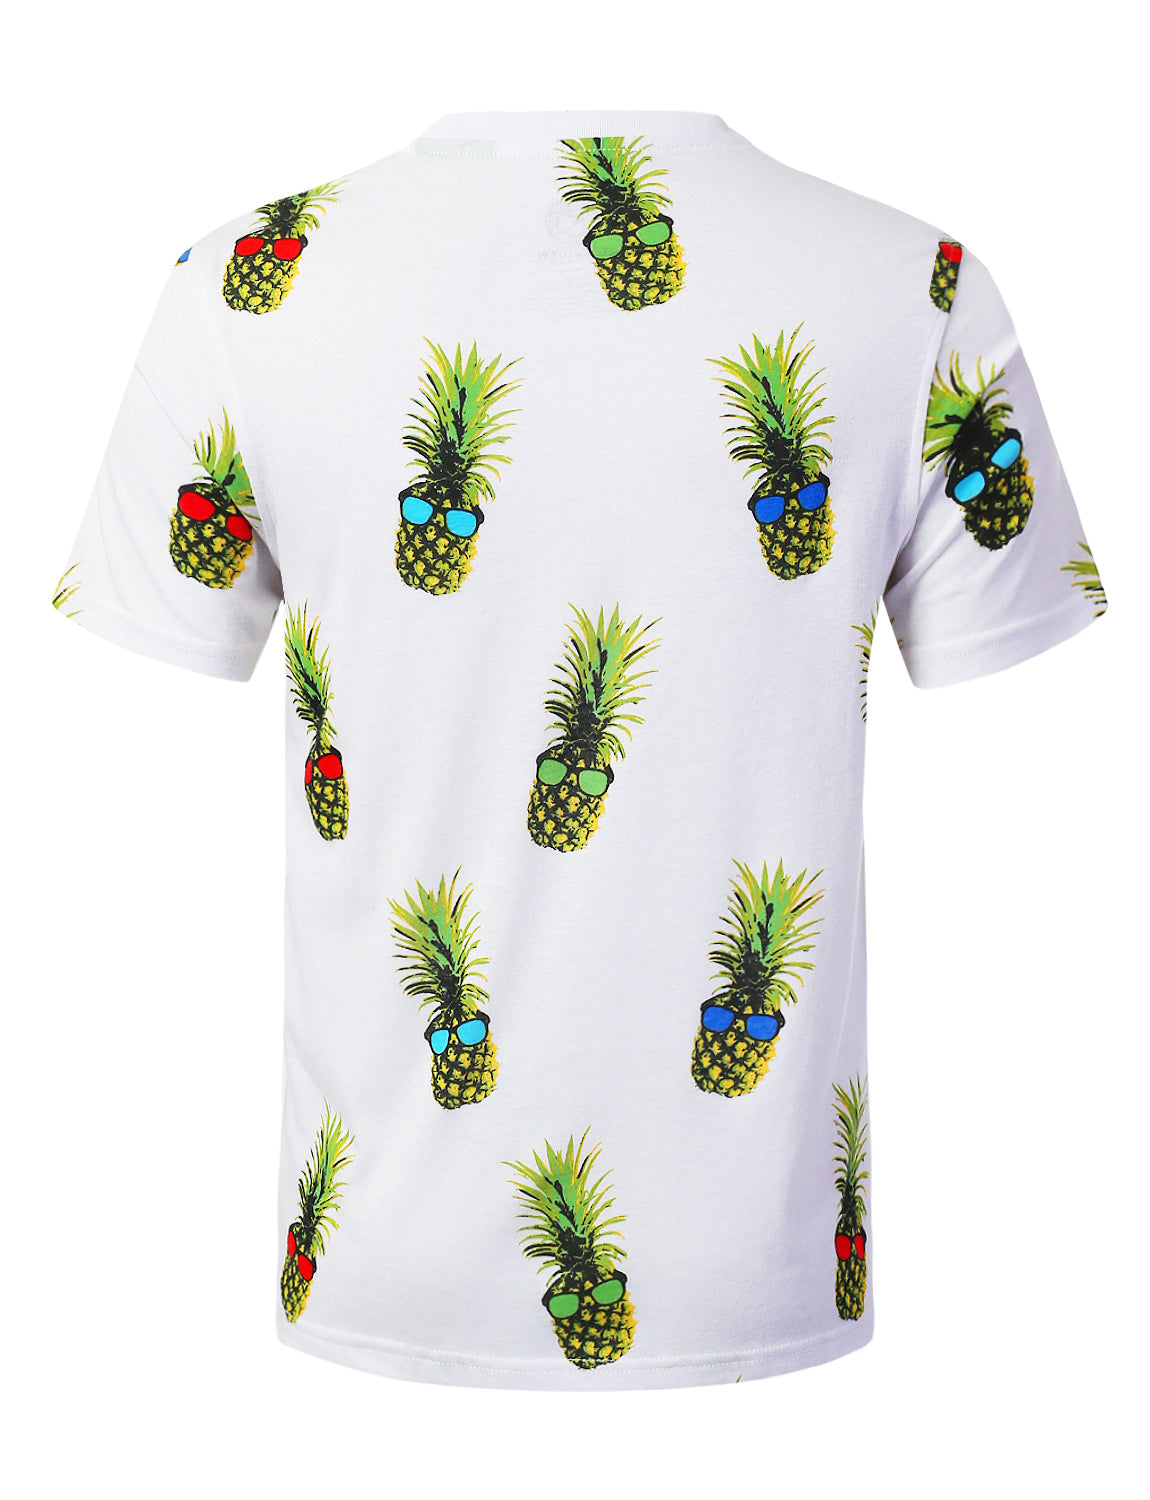 PINEAPPLE Big Food Pattern Graphic Print T-shirt - URBANCREWS